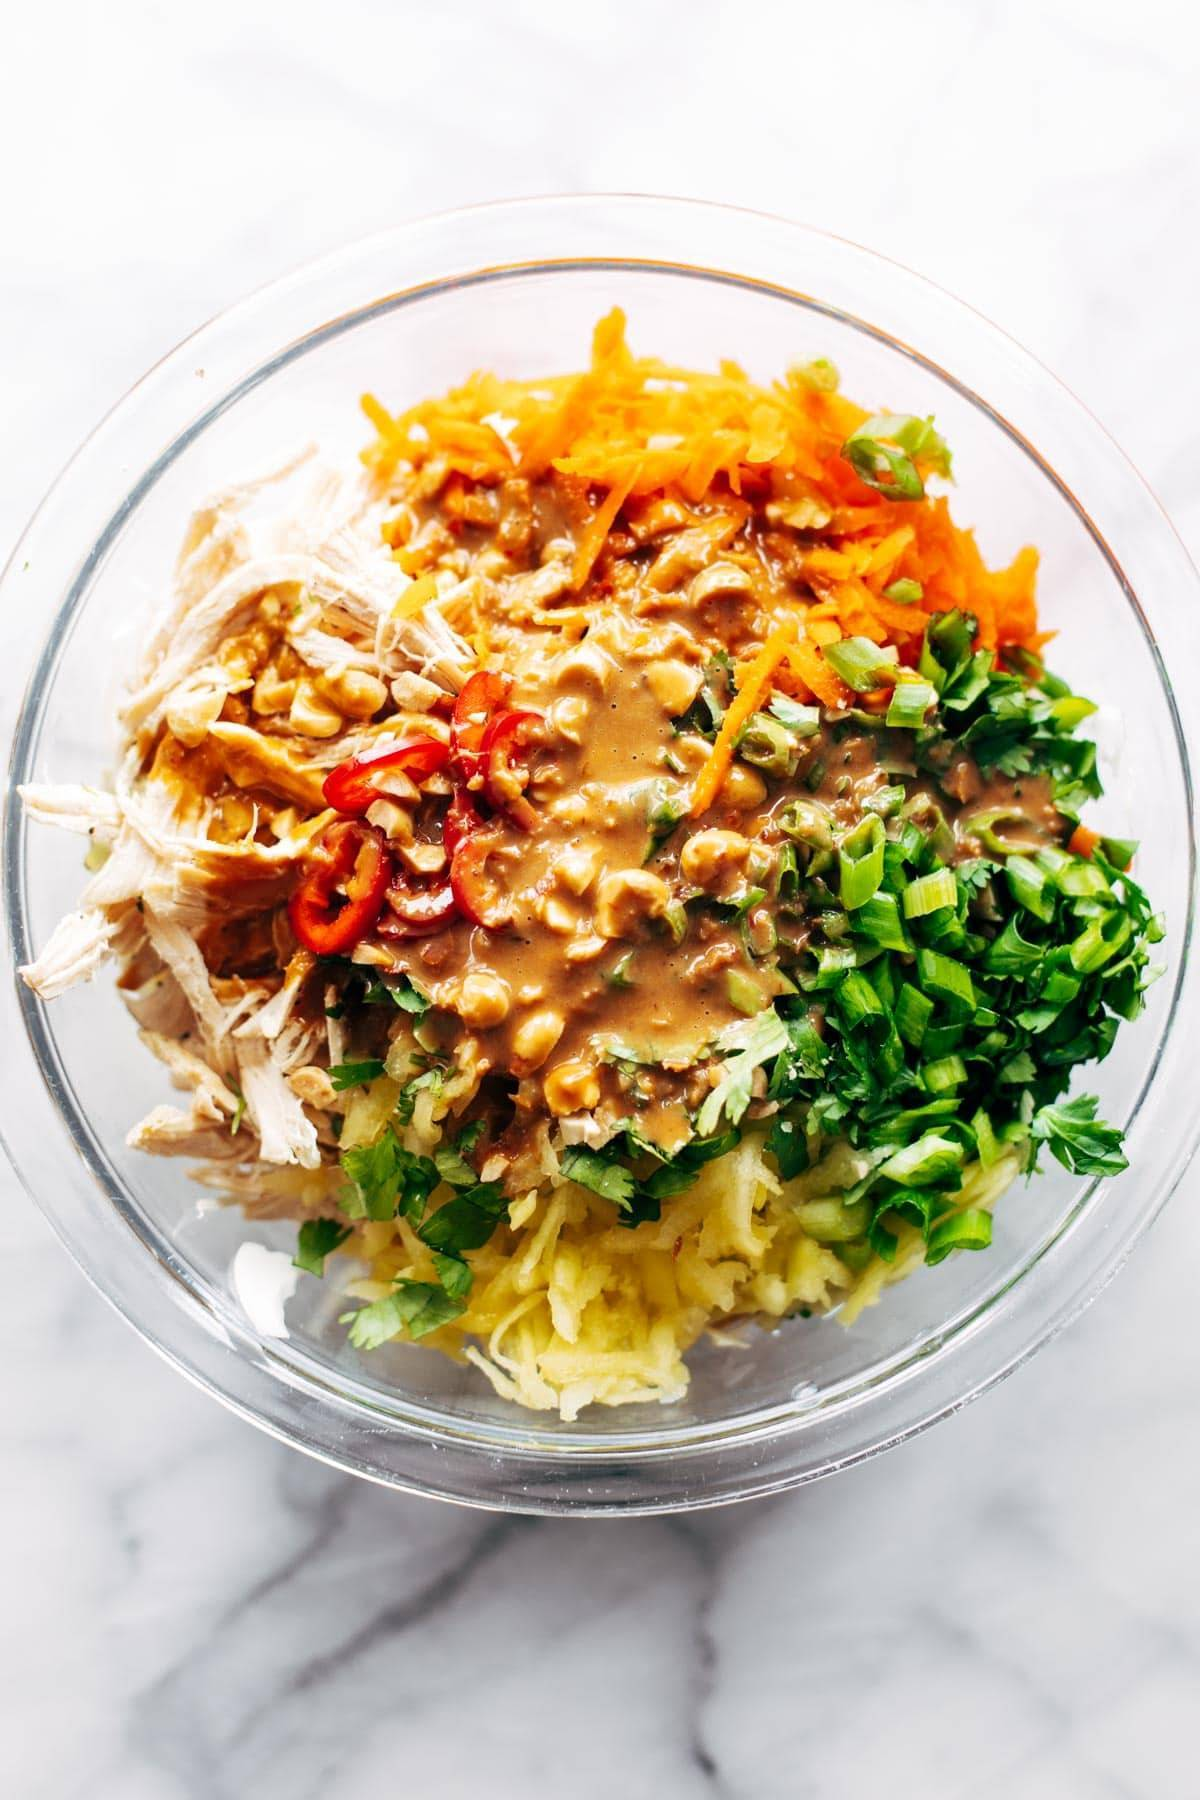 Chopped Thai Chicken Salad in a mixing bowl.